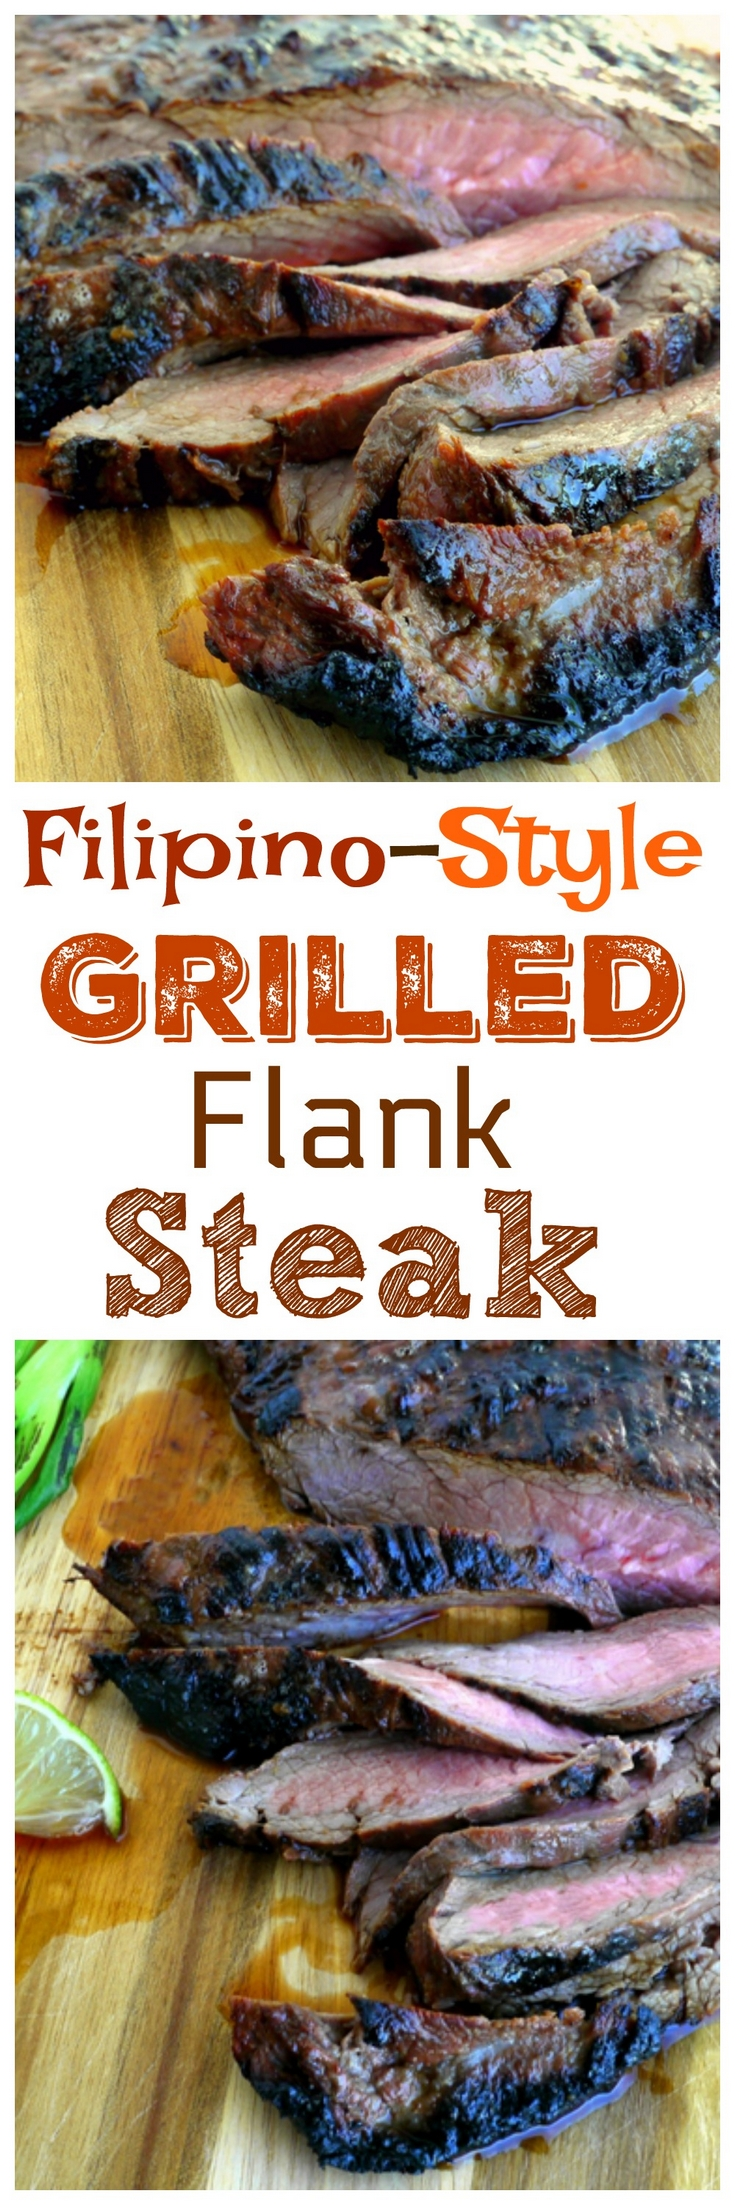 Tender and delicious Filipino-Style Grilled Flank Steak, with the perfect balance of a sweet, salty and sour marinade that is purely Filipino inspired. via @cmpollak1